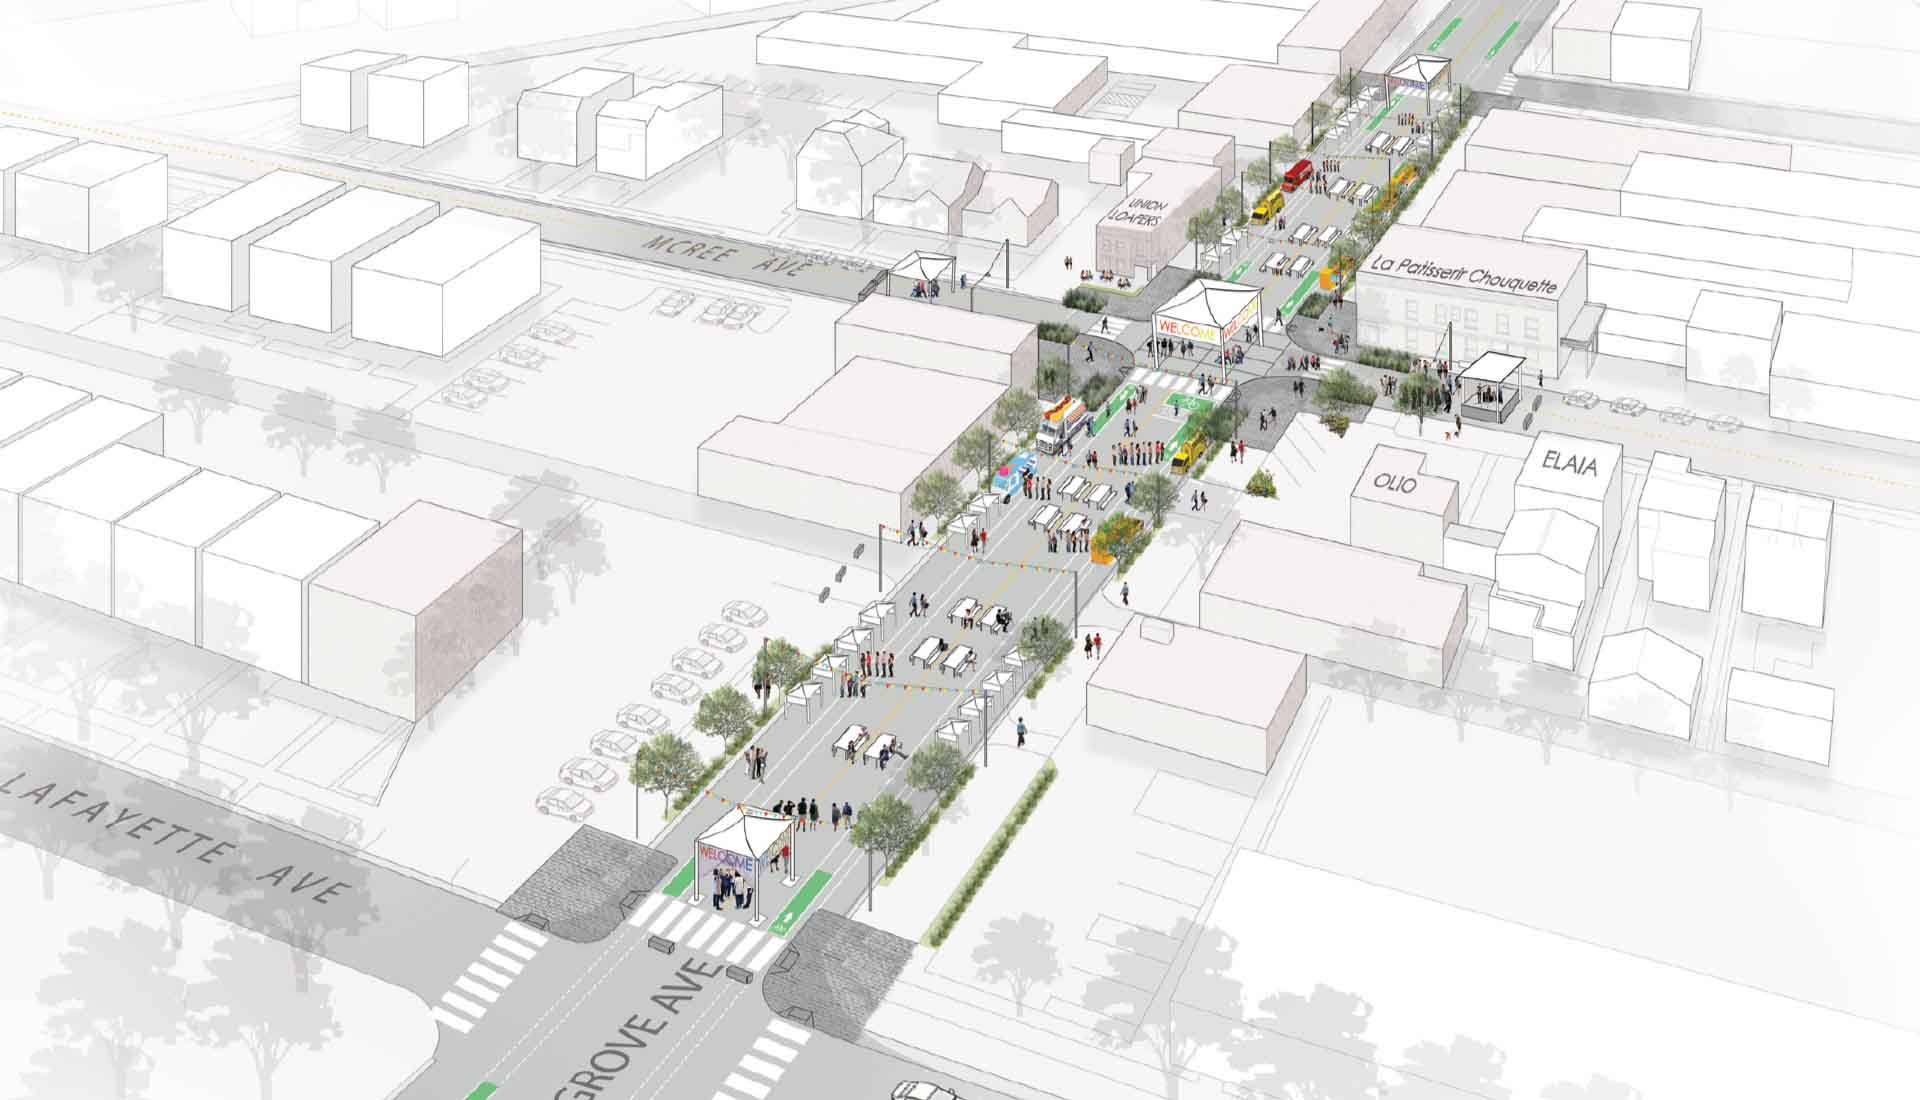 Arbolope Studio | Landscape Architects + Urban Designers | Tower Grove Streetscape Vision